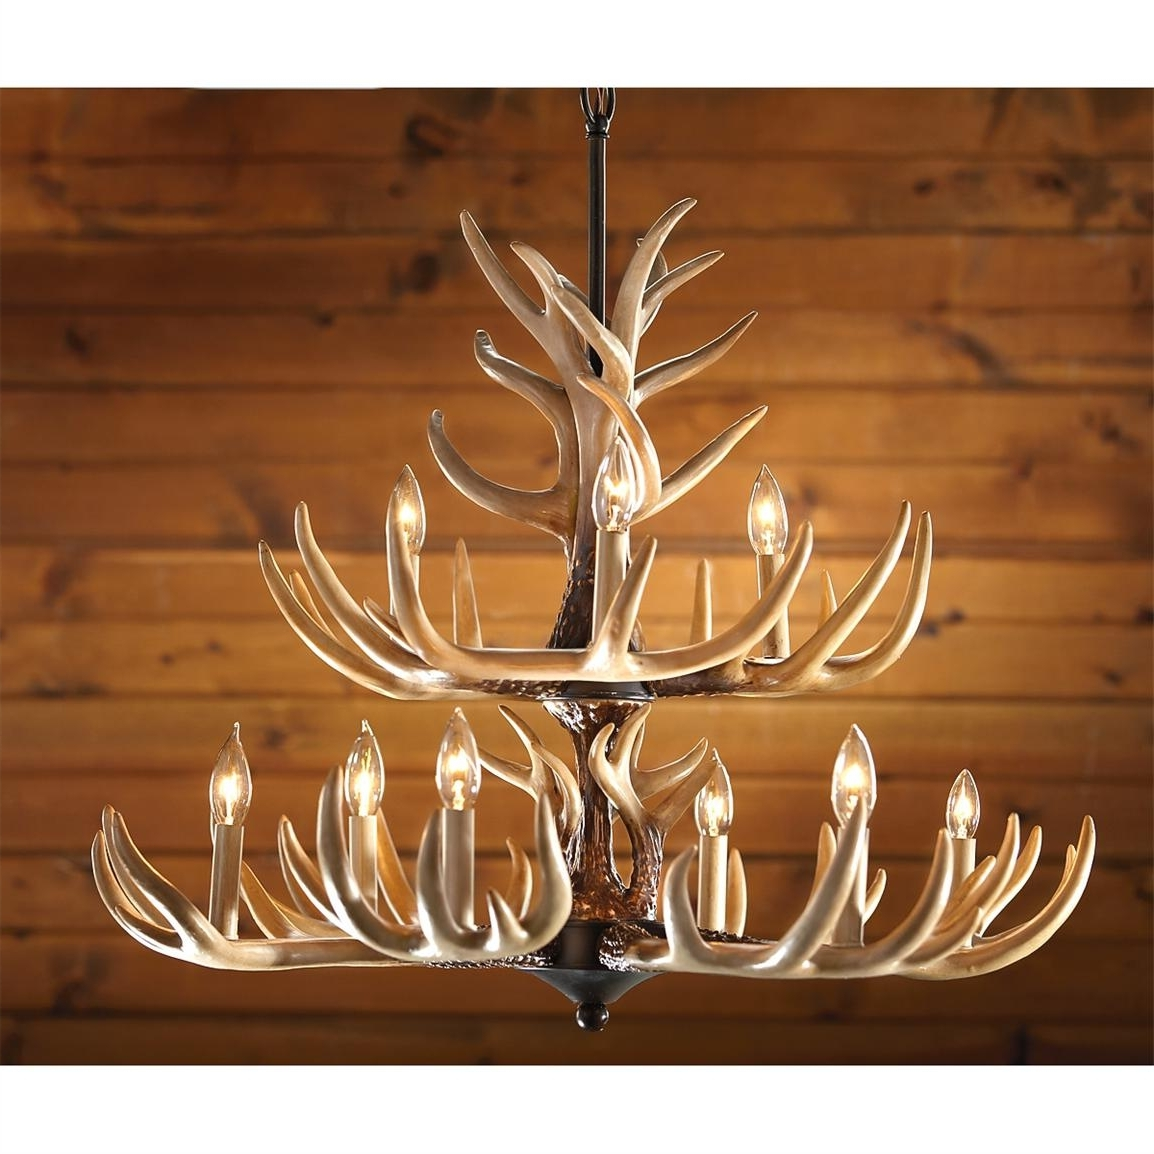 Newest Castlecreek 9 Light Whitetail Antler Chandelier – 226093, Lighting Pertaining To Antler Chandeliers And Lighting (View 14 of 20)